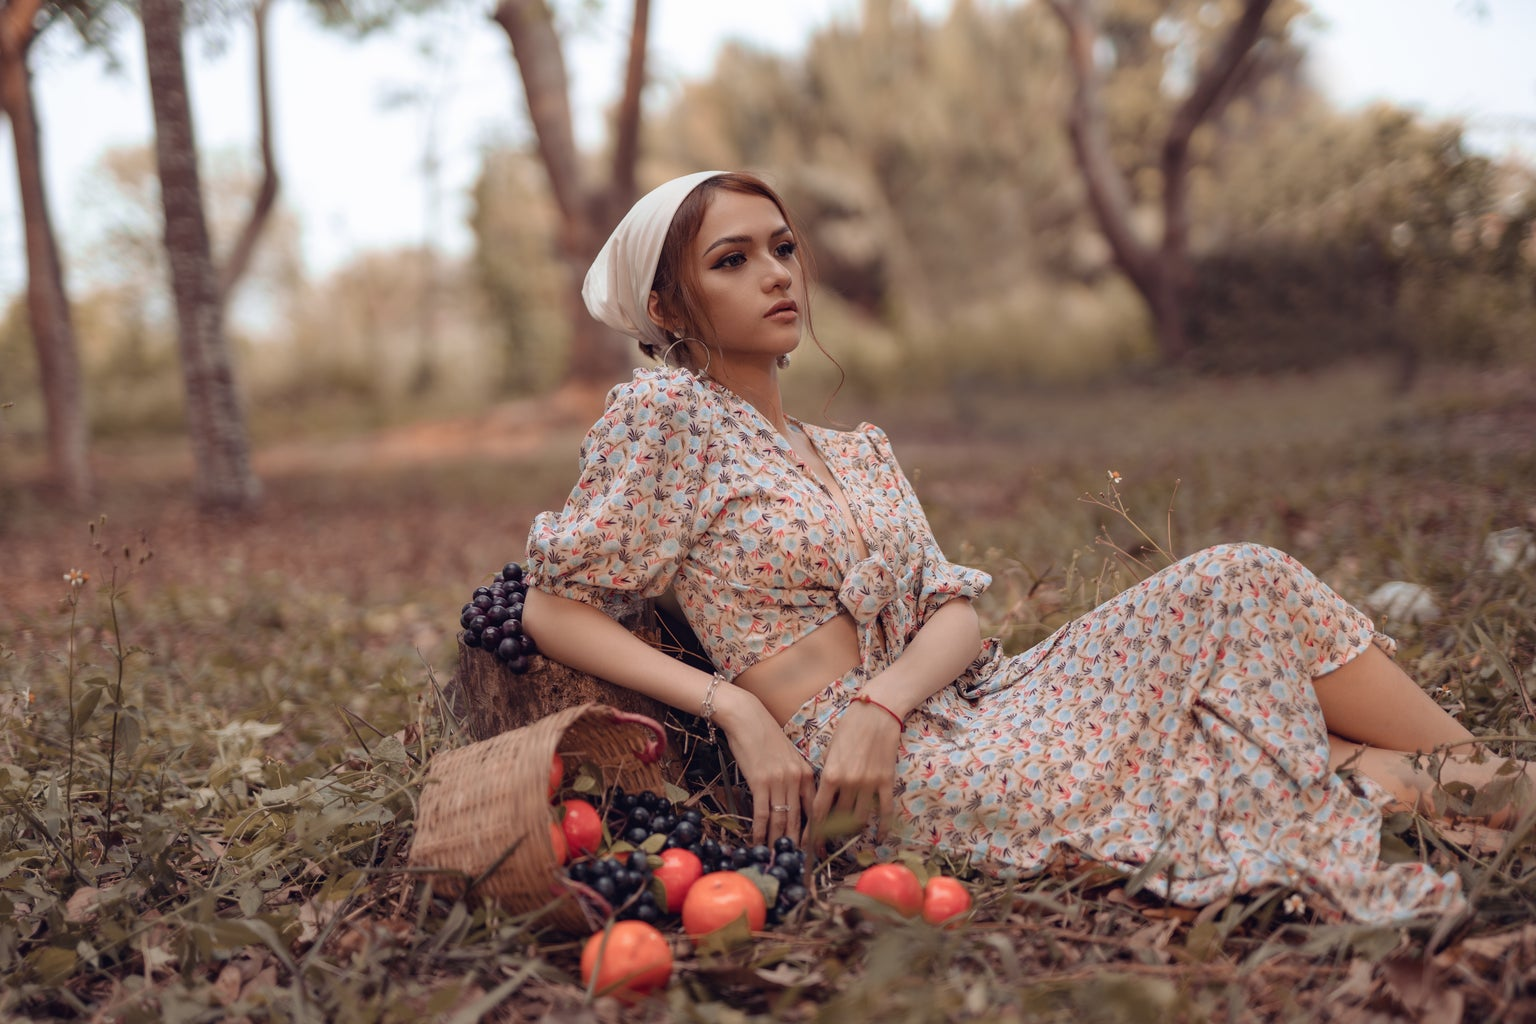 A girl sit in a forest with fruits